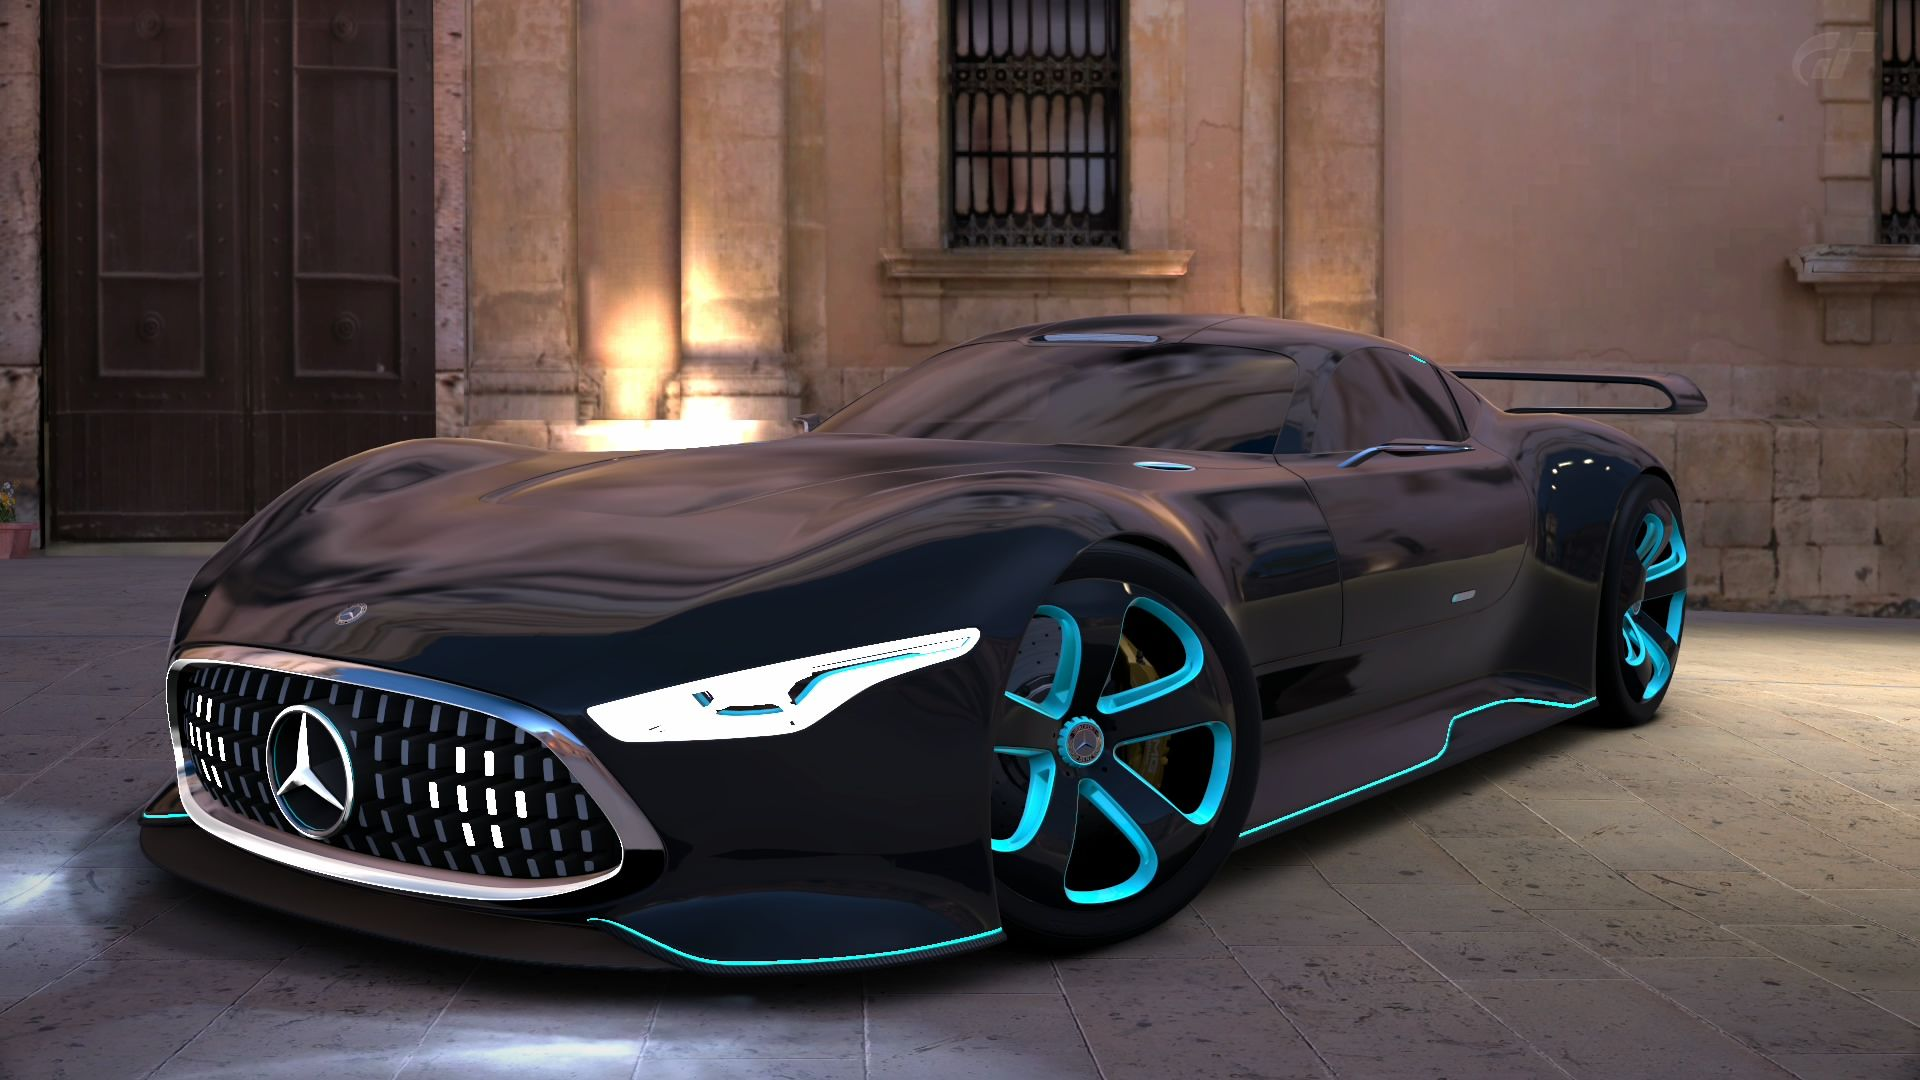 Gran turismo 6 mercedes benz amg vision gt by for Mercedes benz cars